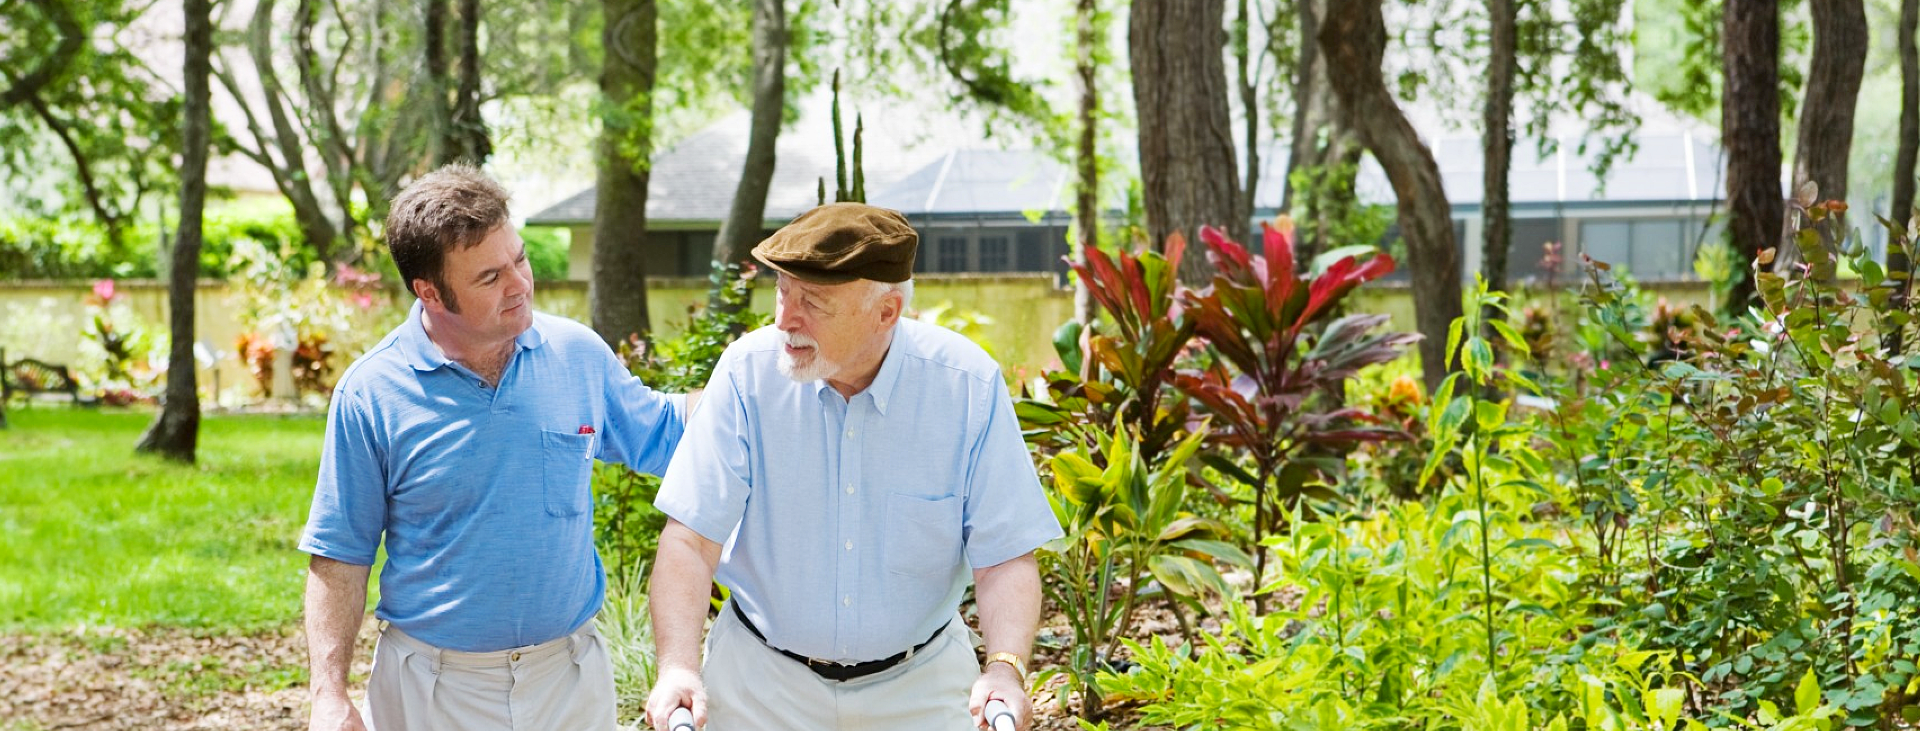 caregiver and patient in the garden